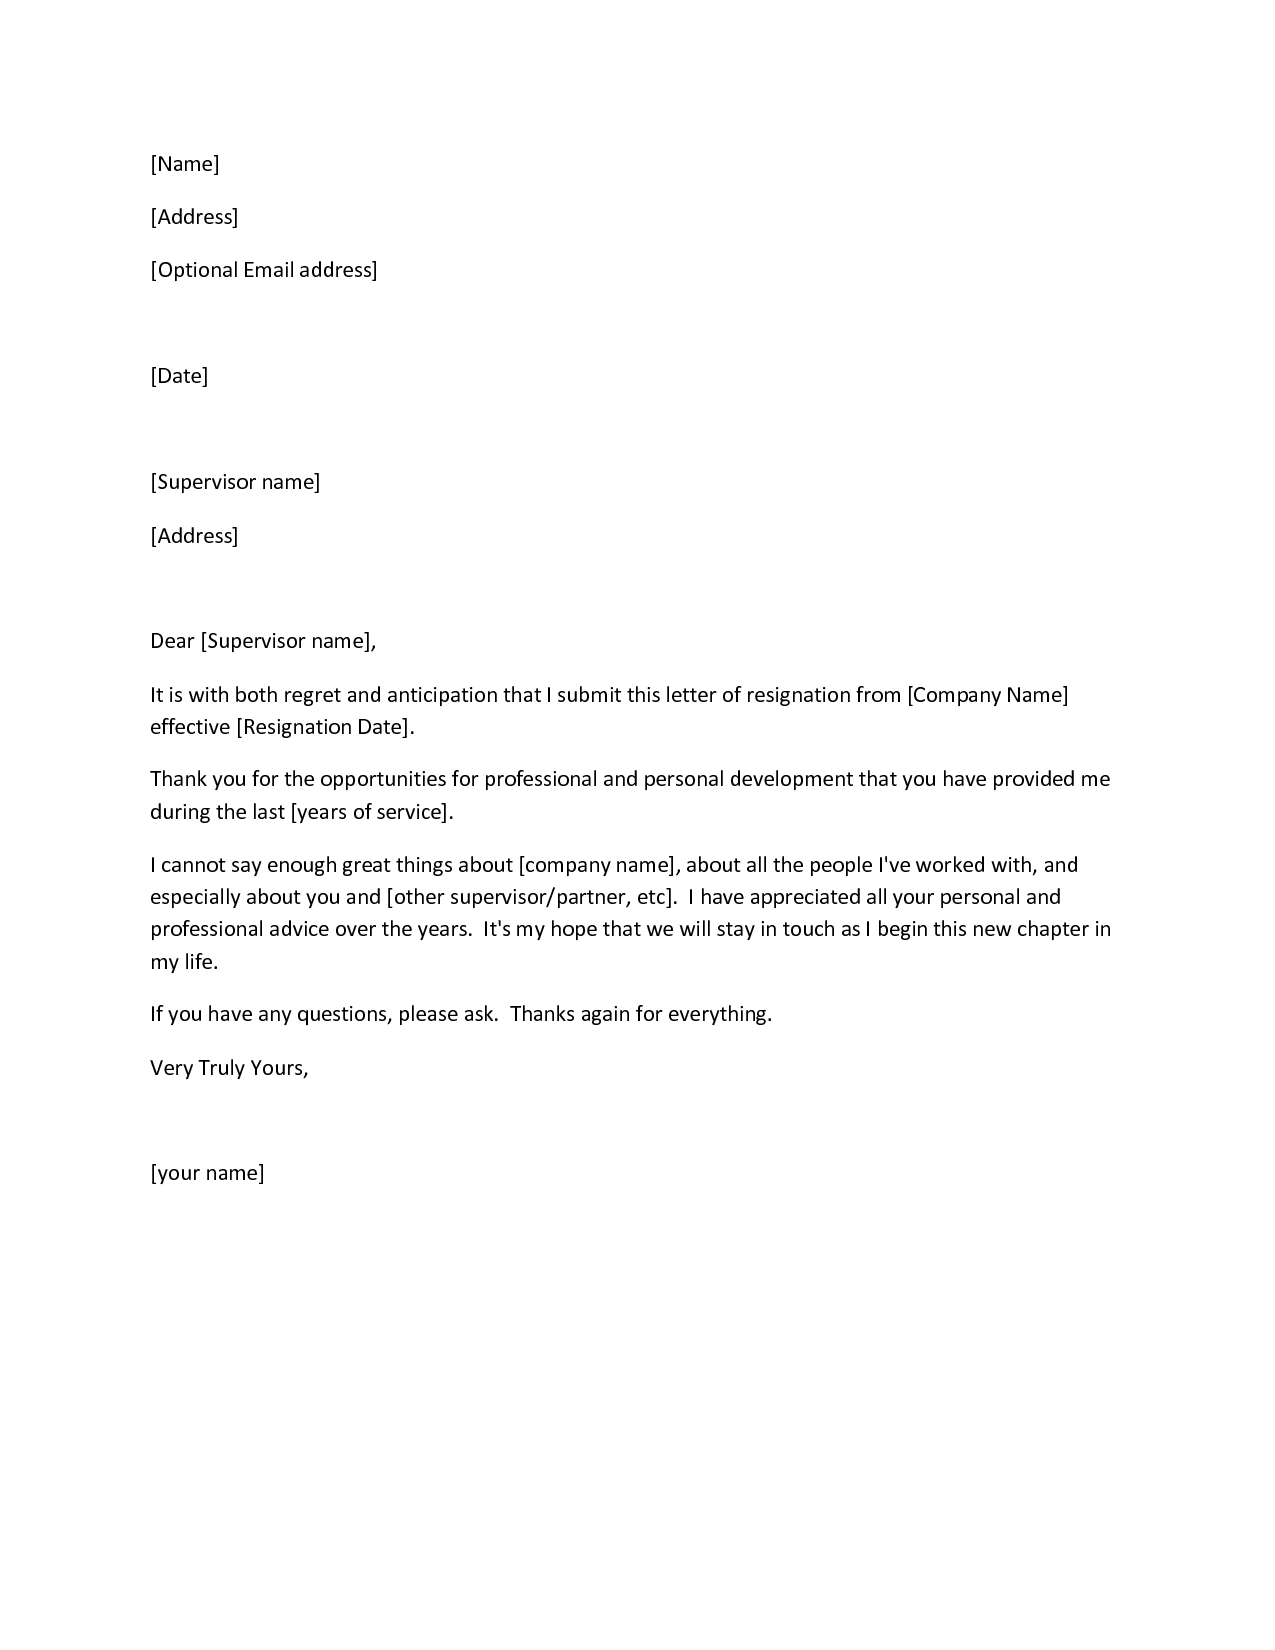 Printable Sample Letter of Resignation Form – Letter Asking for Resignation